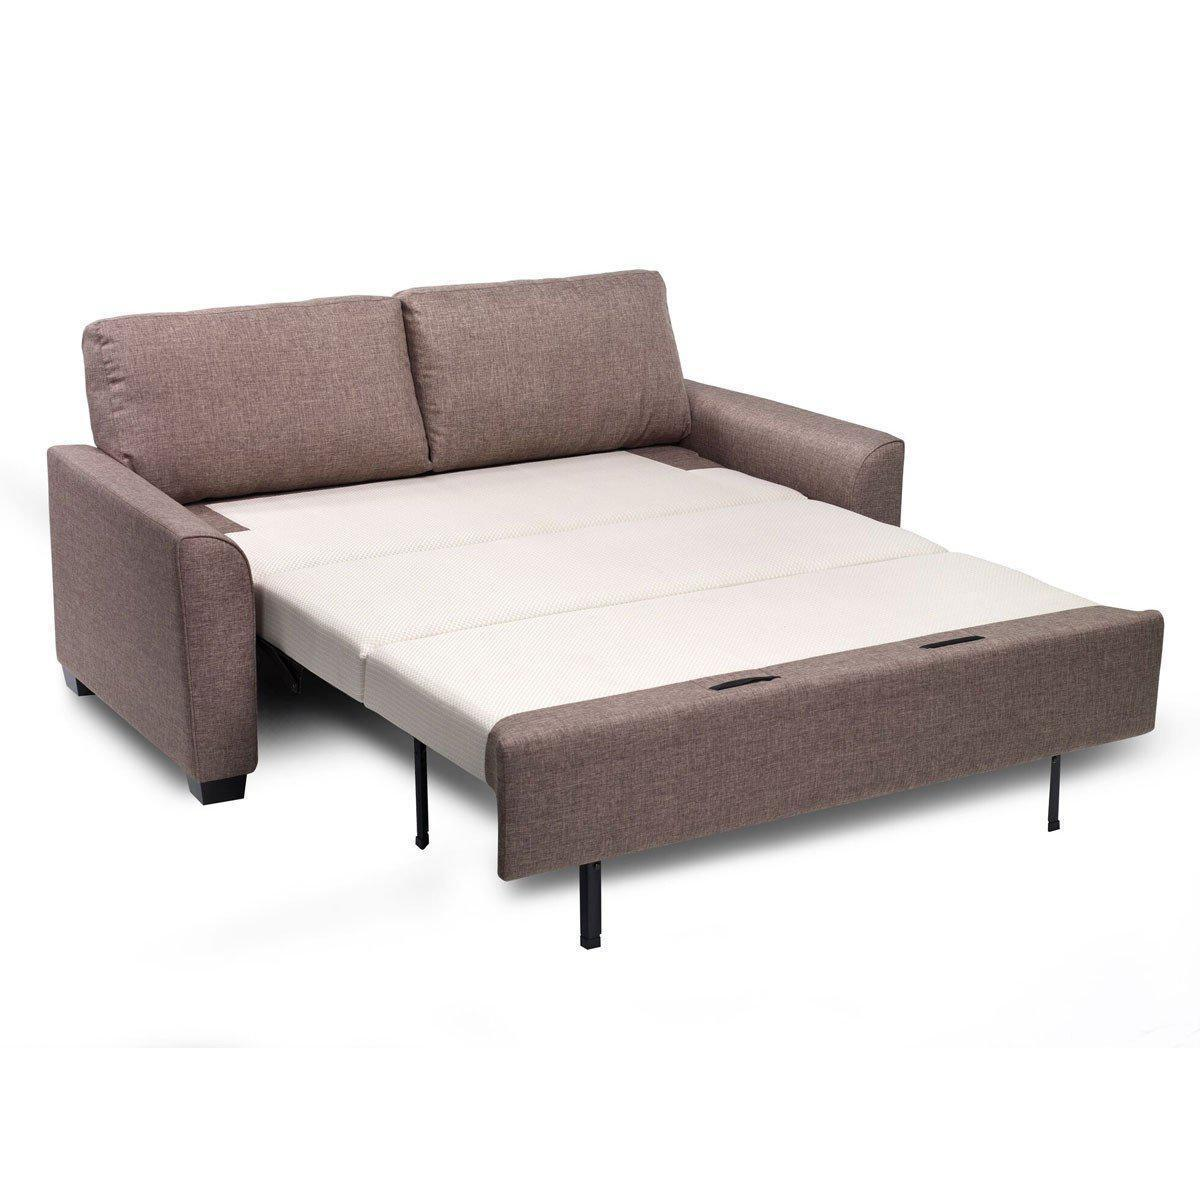 Holden Everyday Leather Sleeper Sofa